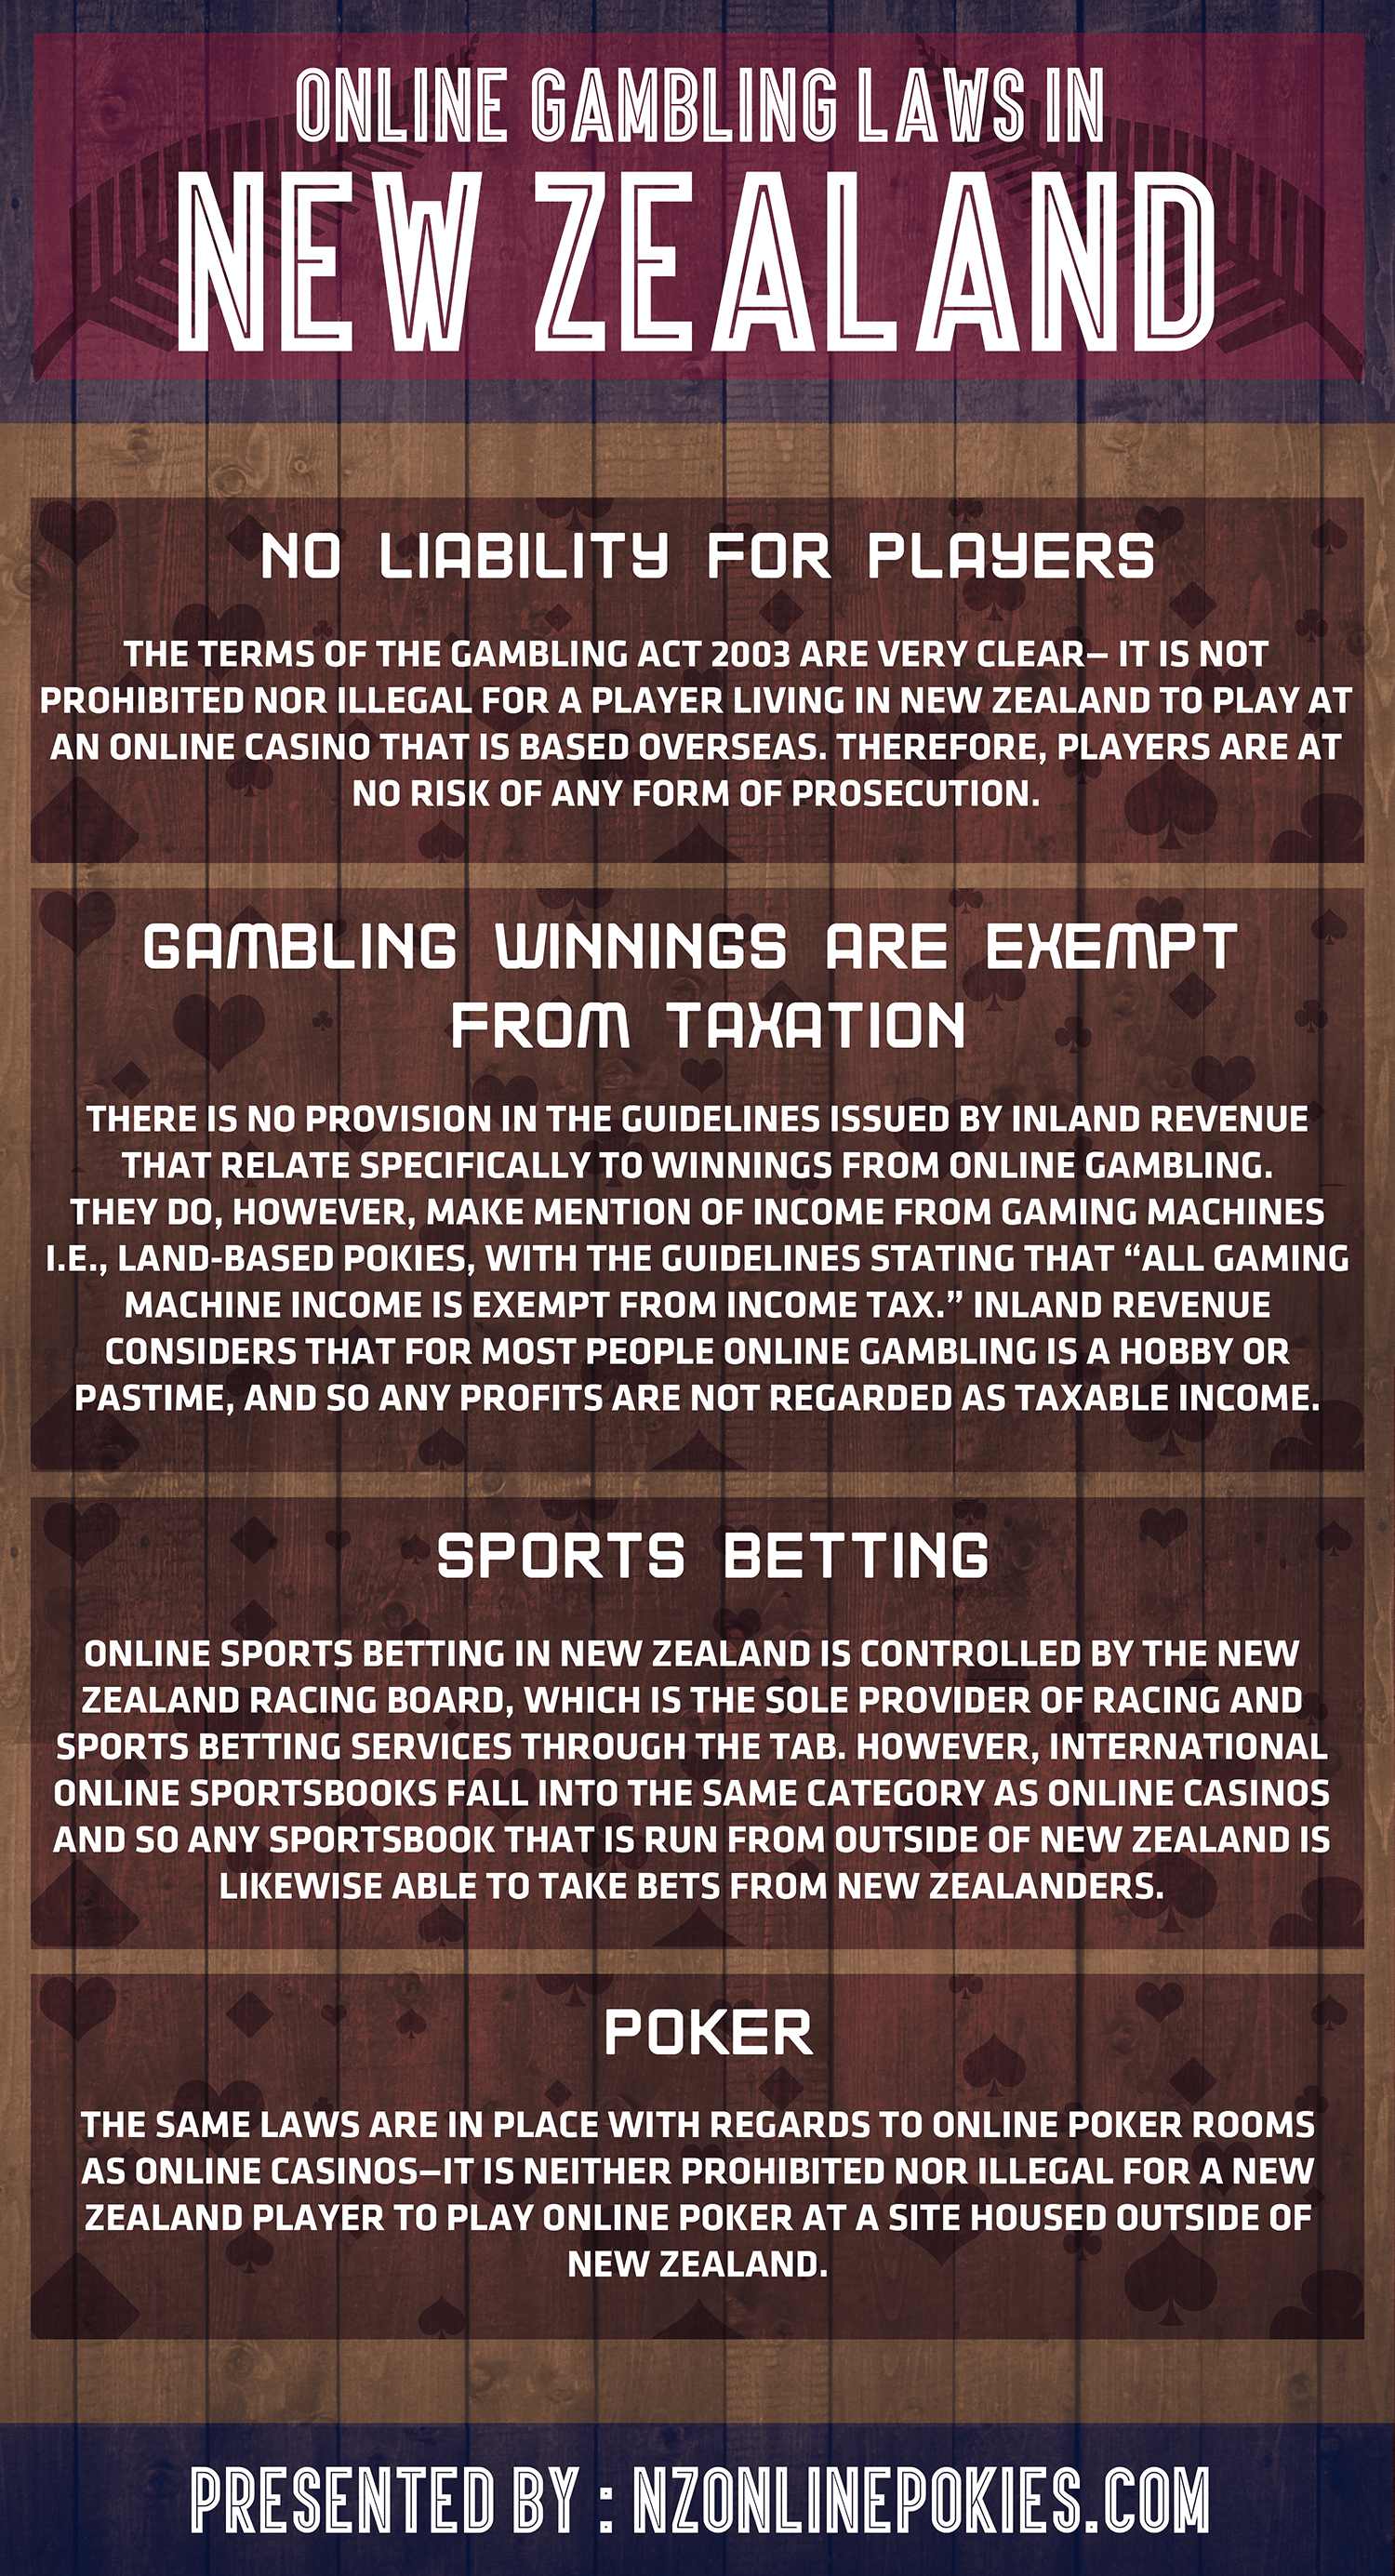 Online Gambling Laws in New Zealand